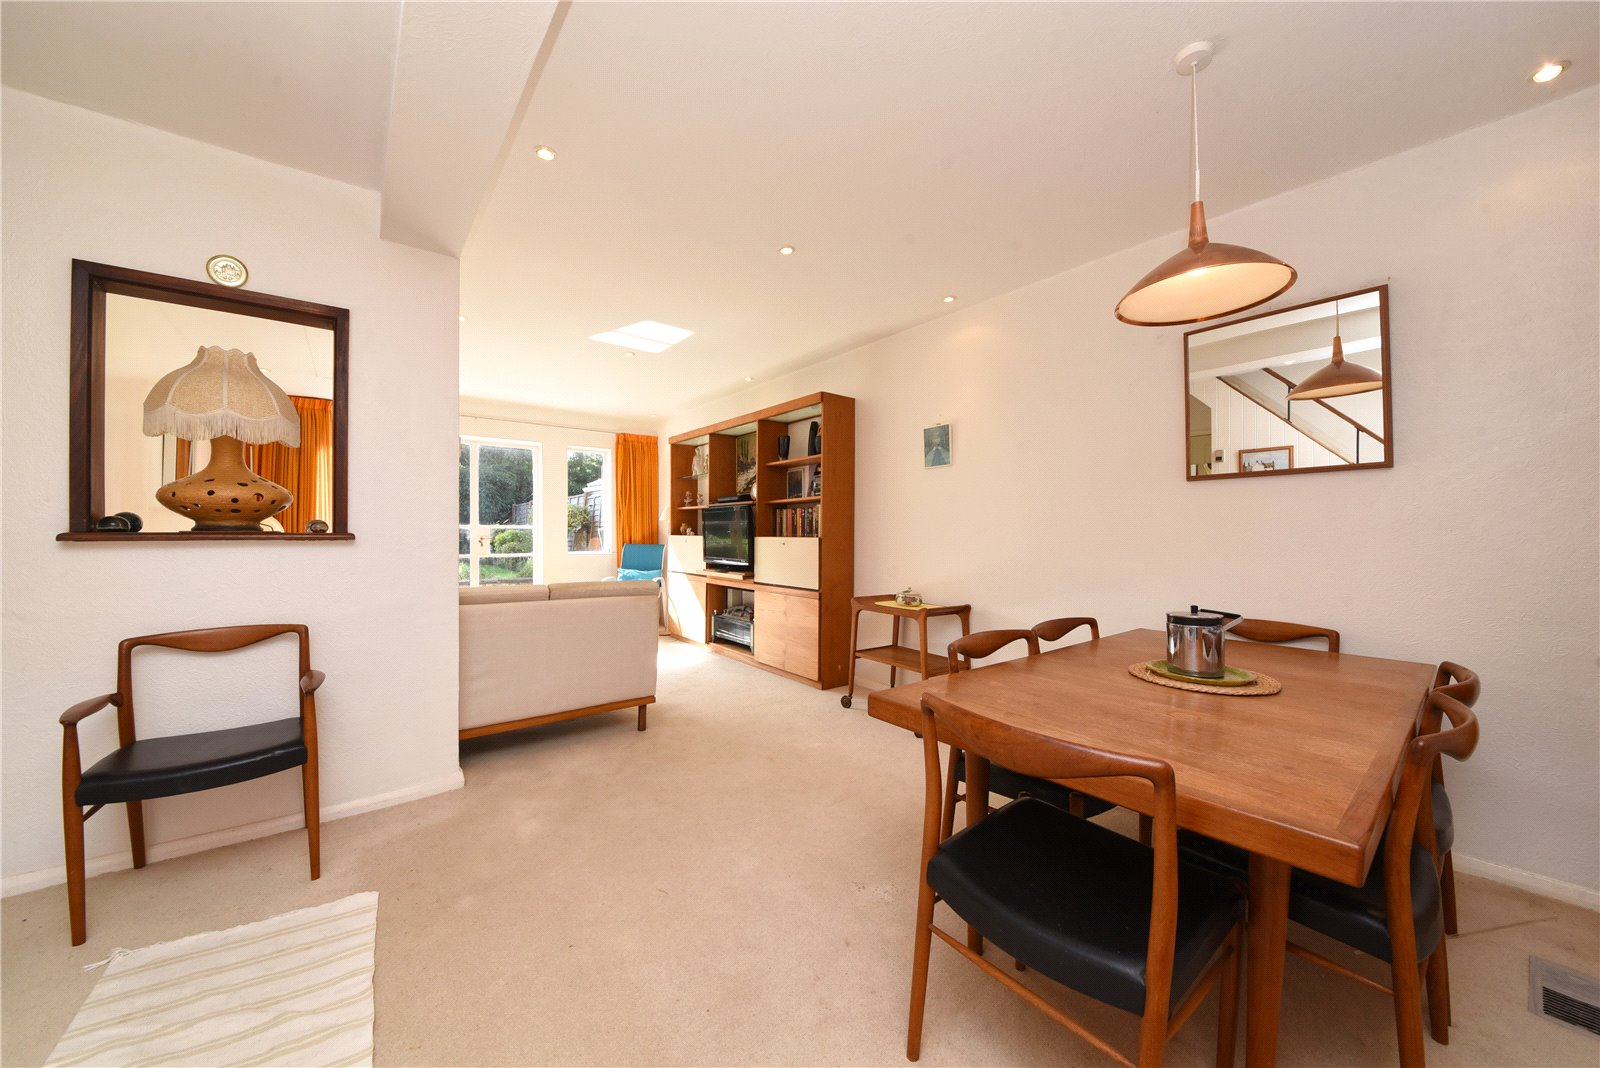 3 bed house for sale in West Finchley, N3 1PB 8